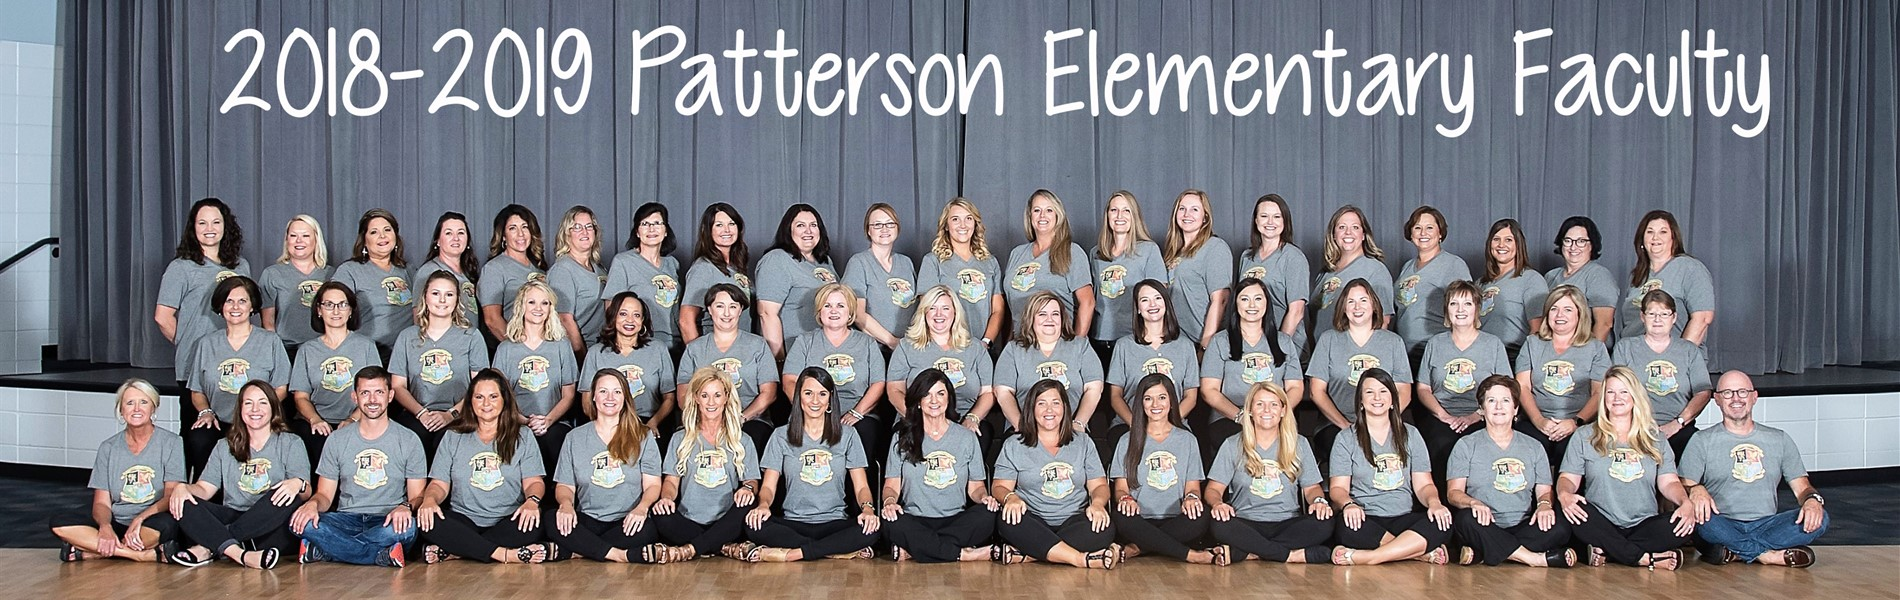 2018-2019 Patterson Elementary Faculty